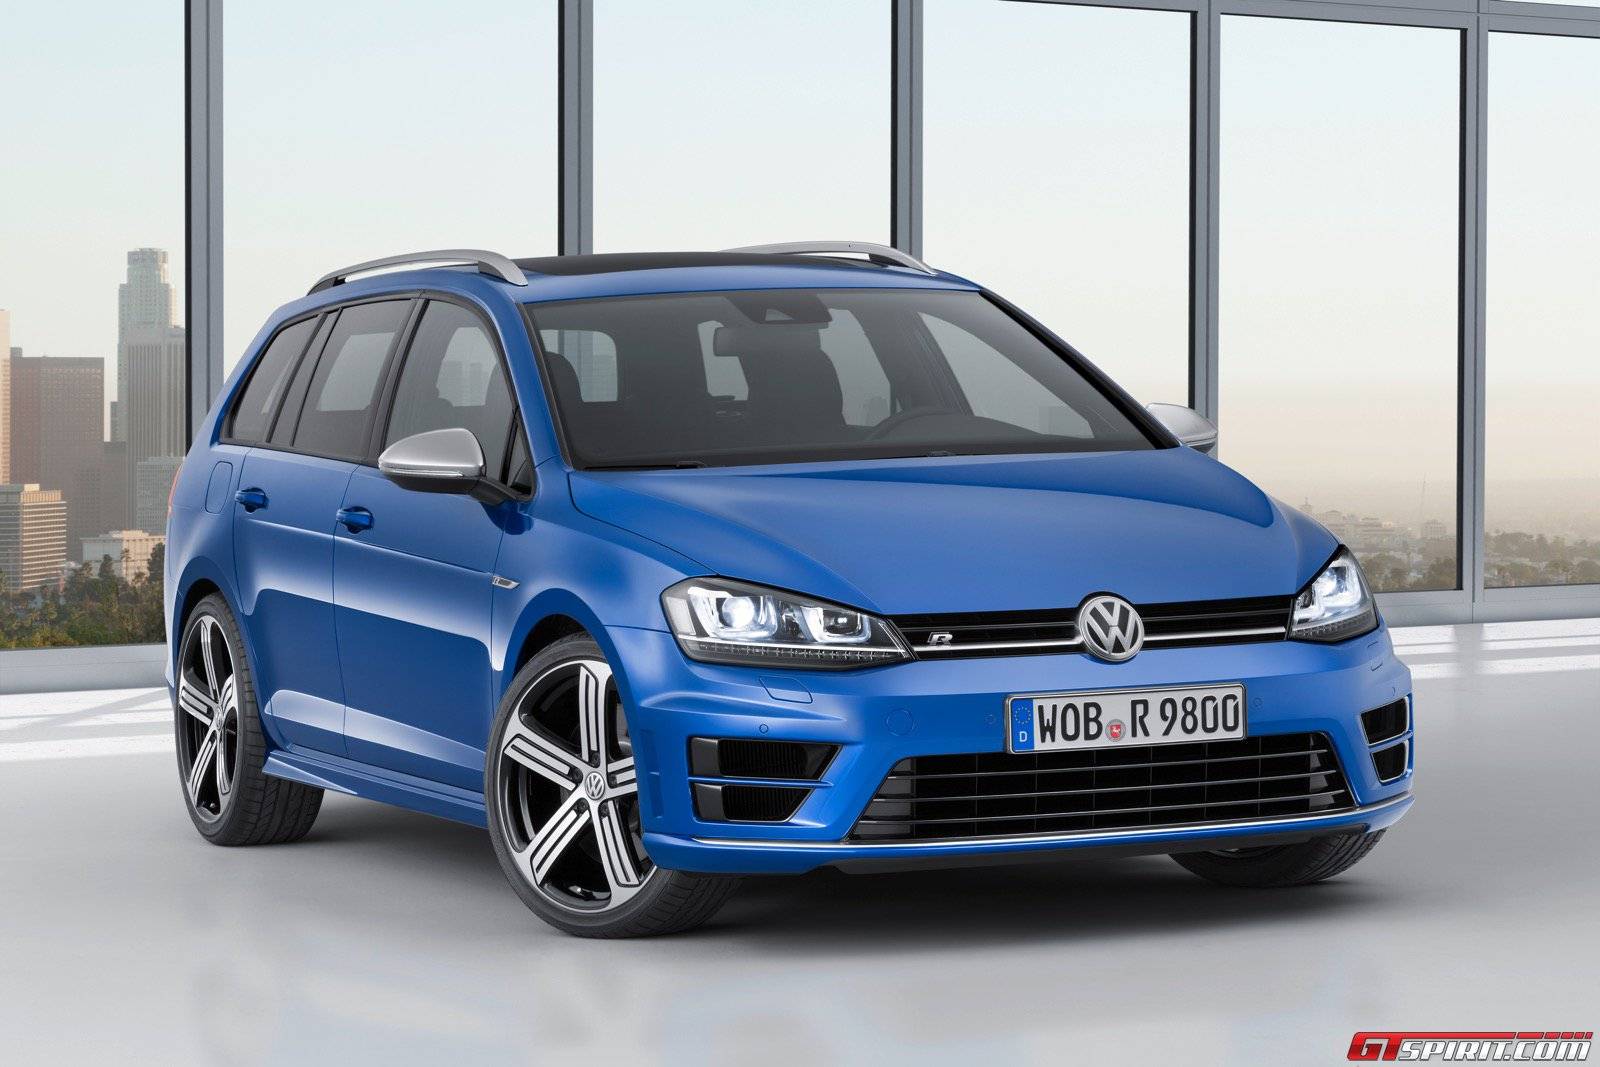 official 2015 volkswagen golf r variant gtspirit. Black Bedroom Furniture Sets. Home Design Ideas